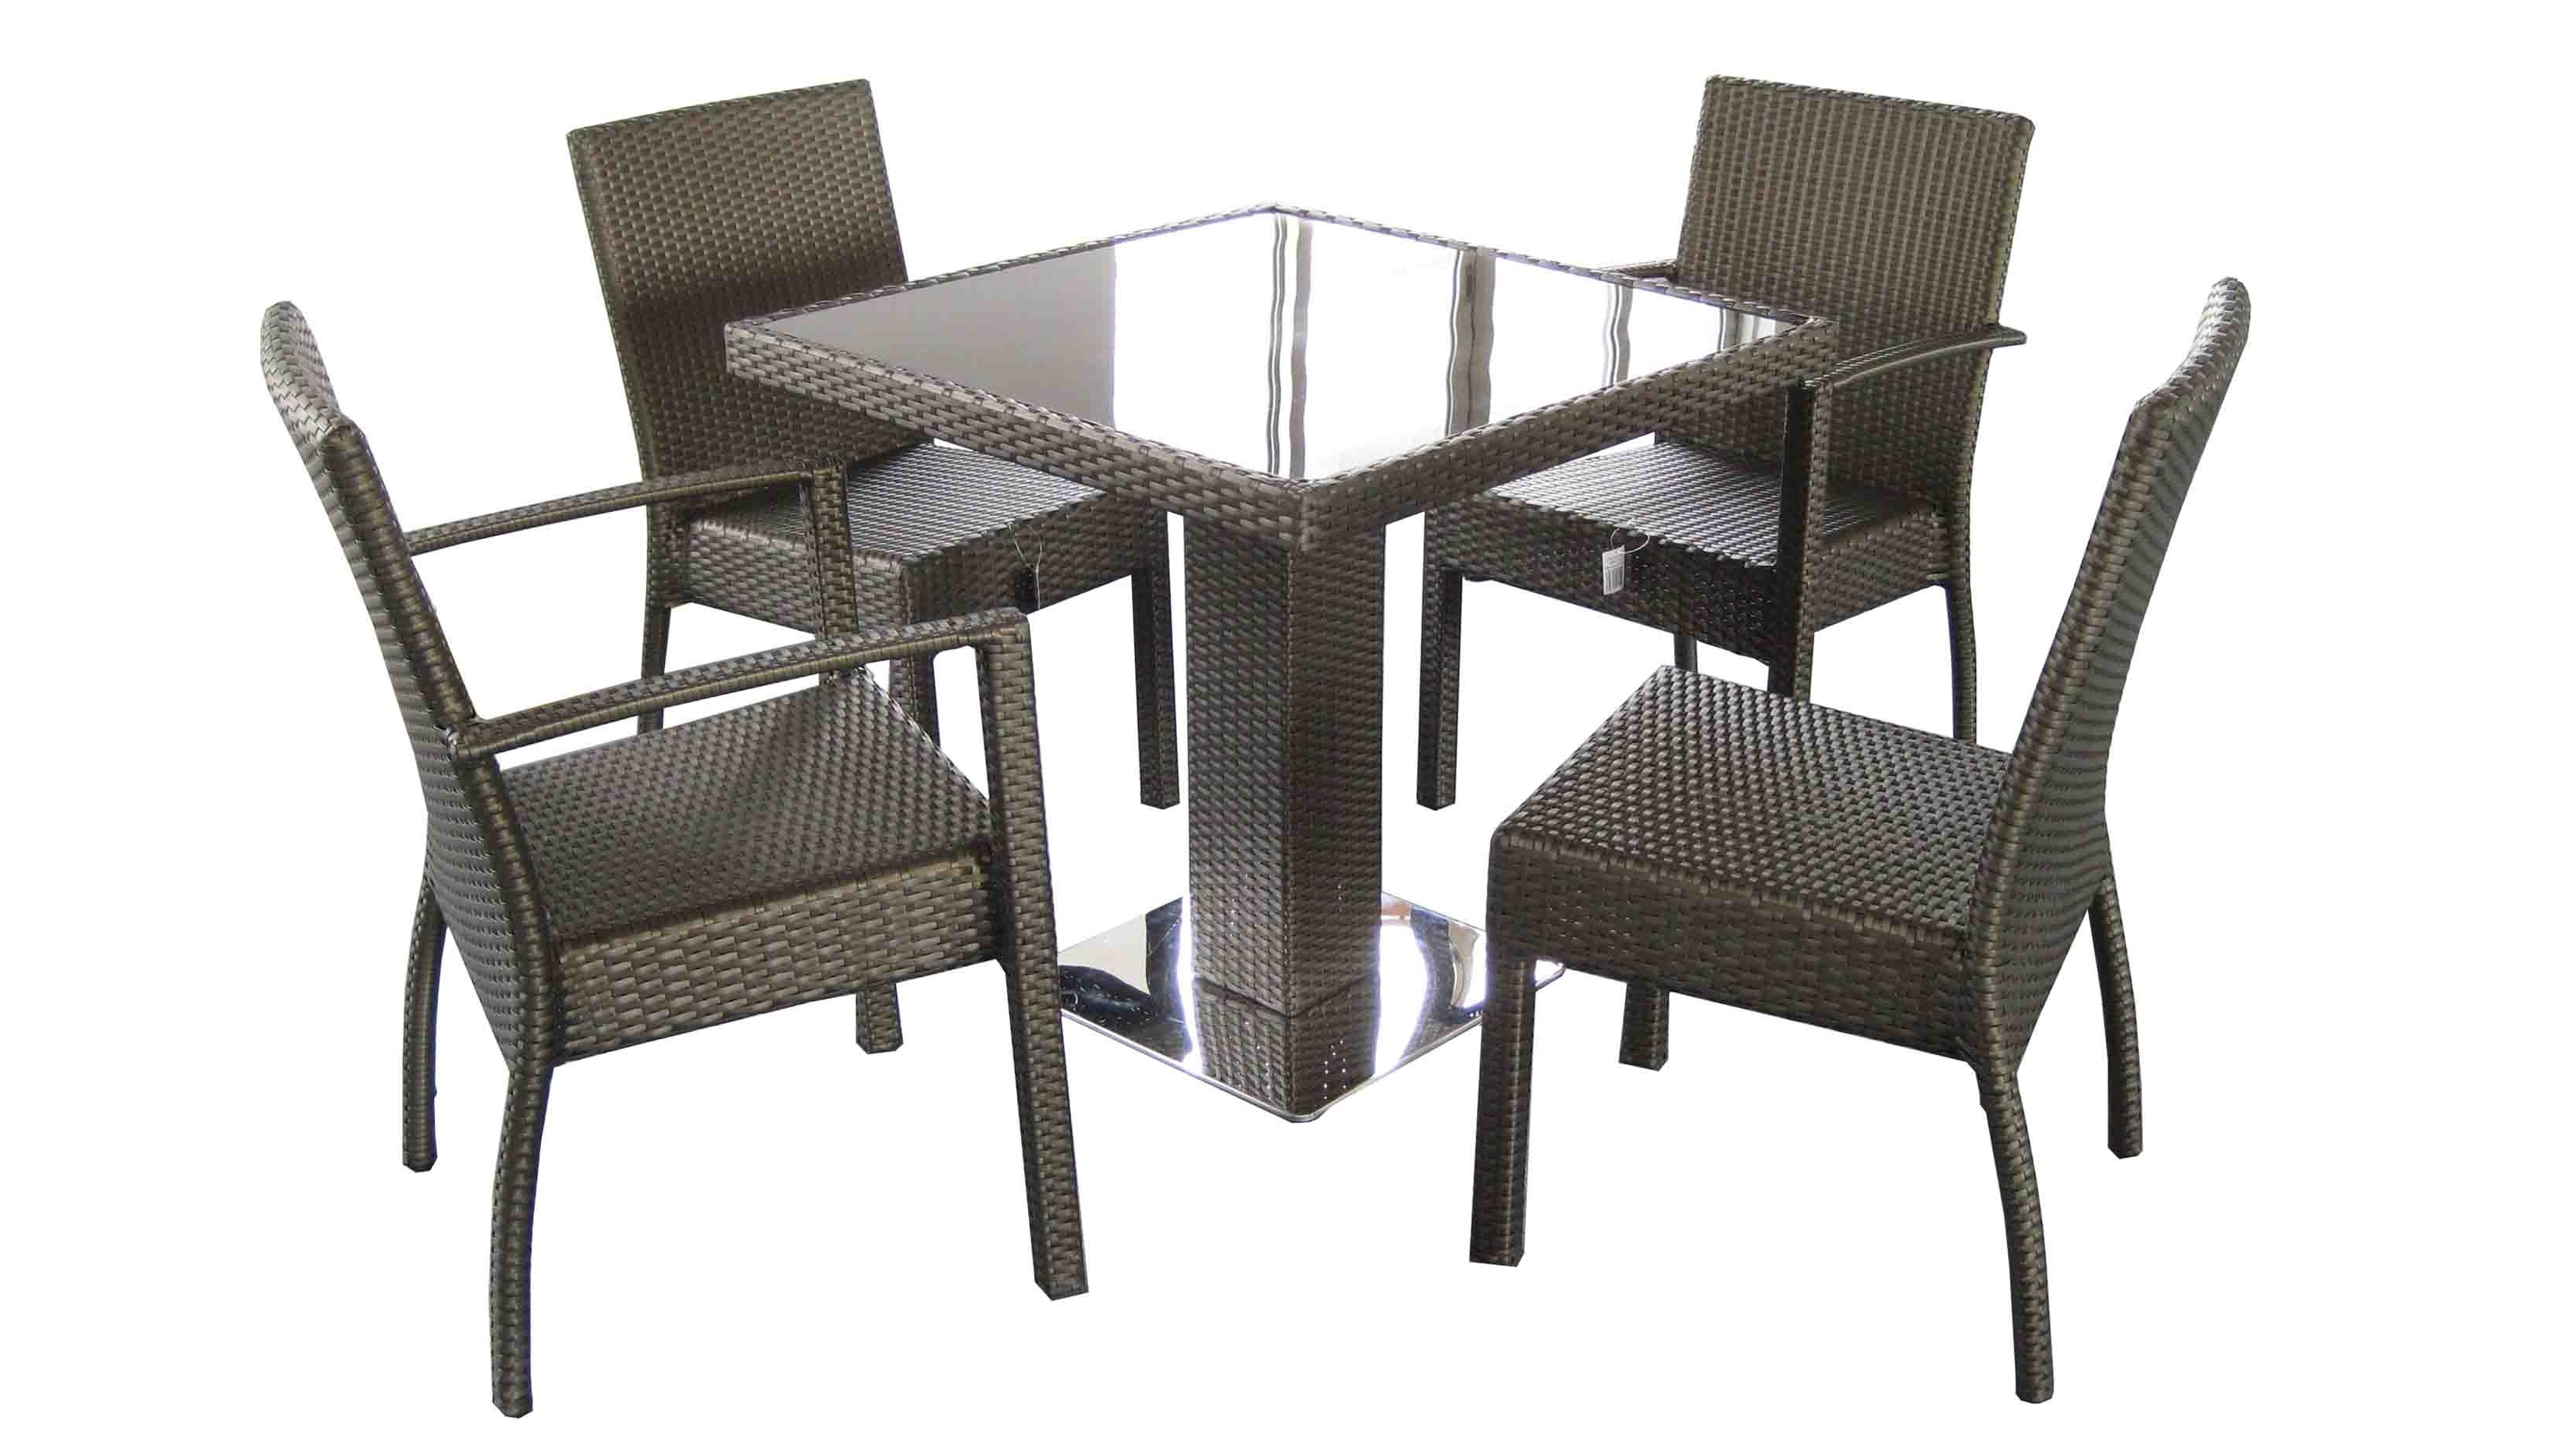 Rattan Dining Table Set,outdoor Furniture,outdoor Wicker, Cheap Within Well Known Rattan Dining Tables (View 6 of 25)